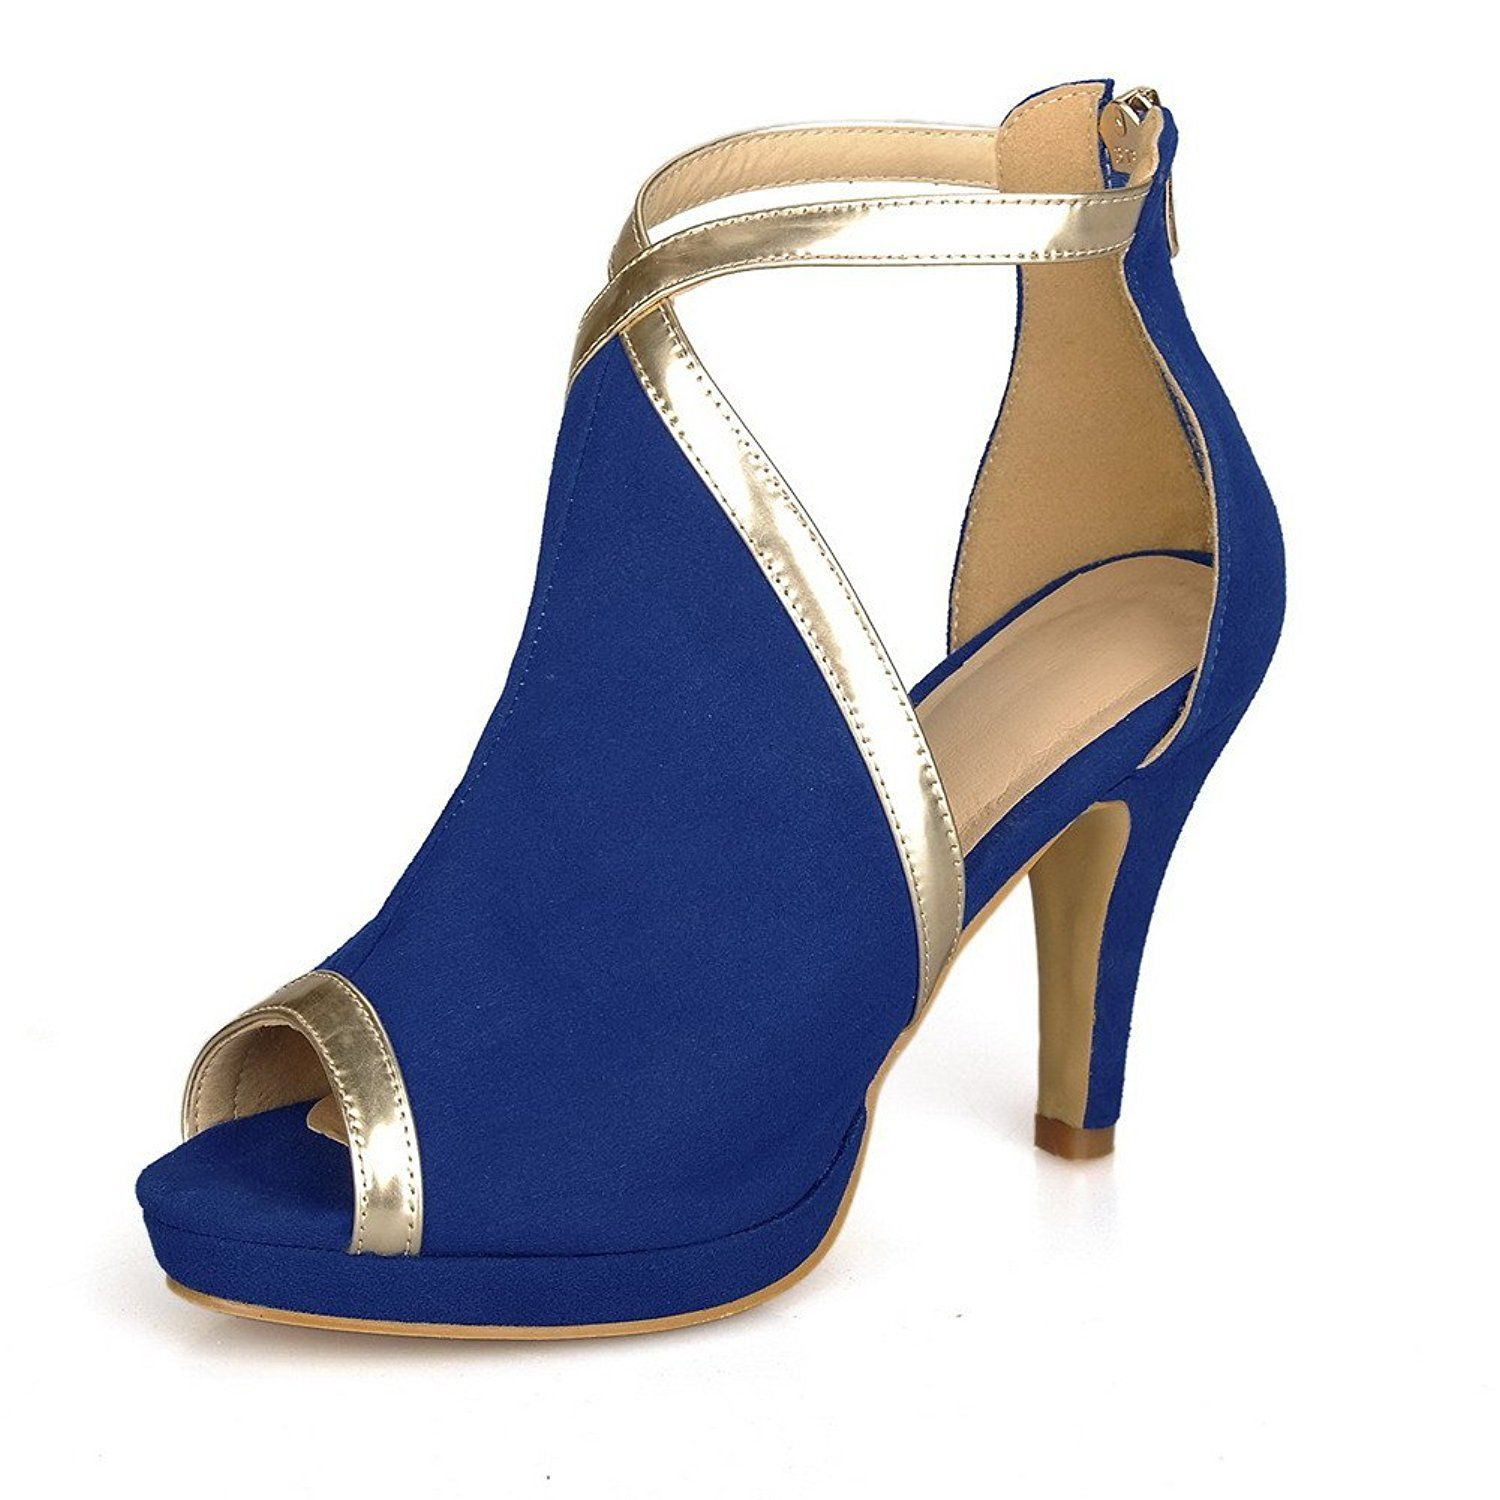 AmoonyFashion Women's Peep Toe Kitten Heel Suede Frosted Assorted Colors Sandals * More info could be found at the image url.